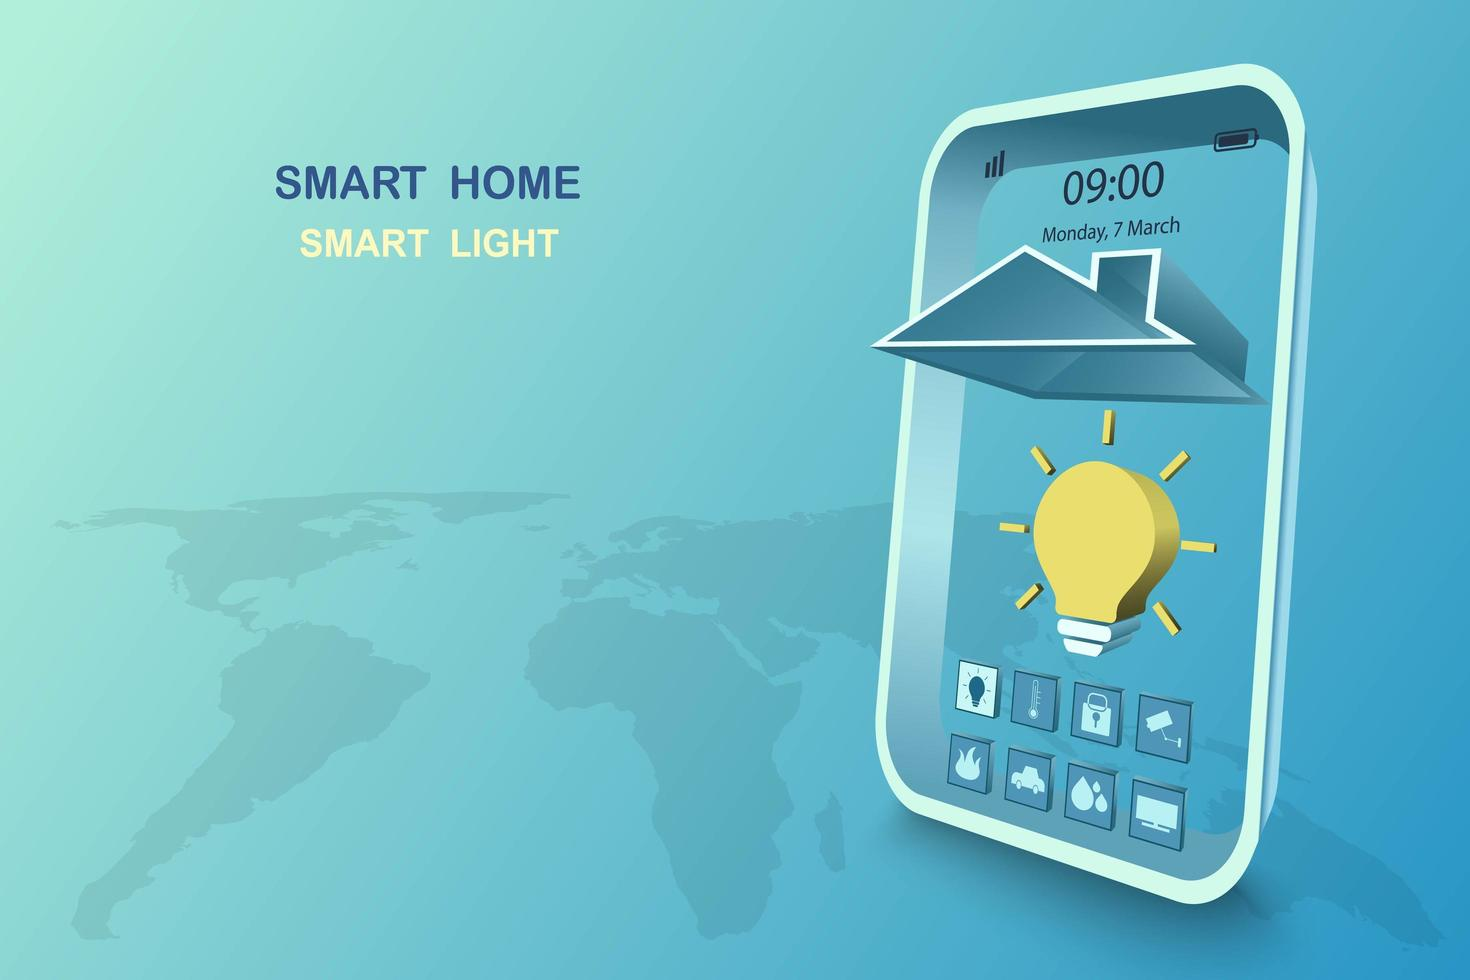 Smart home with light control vector